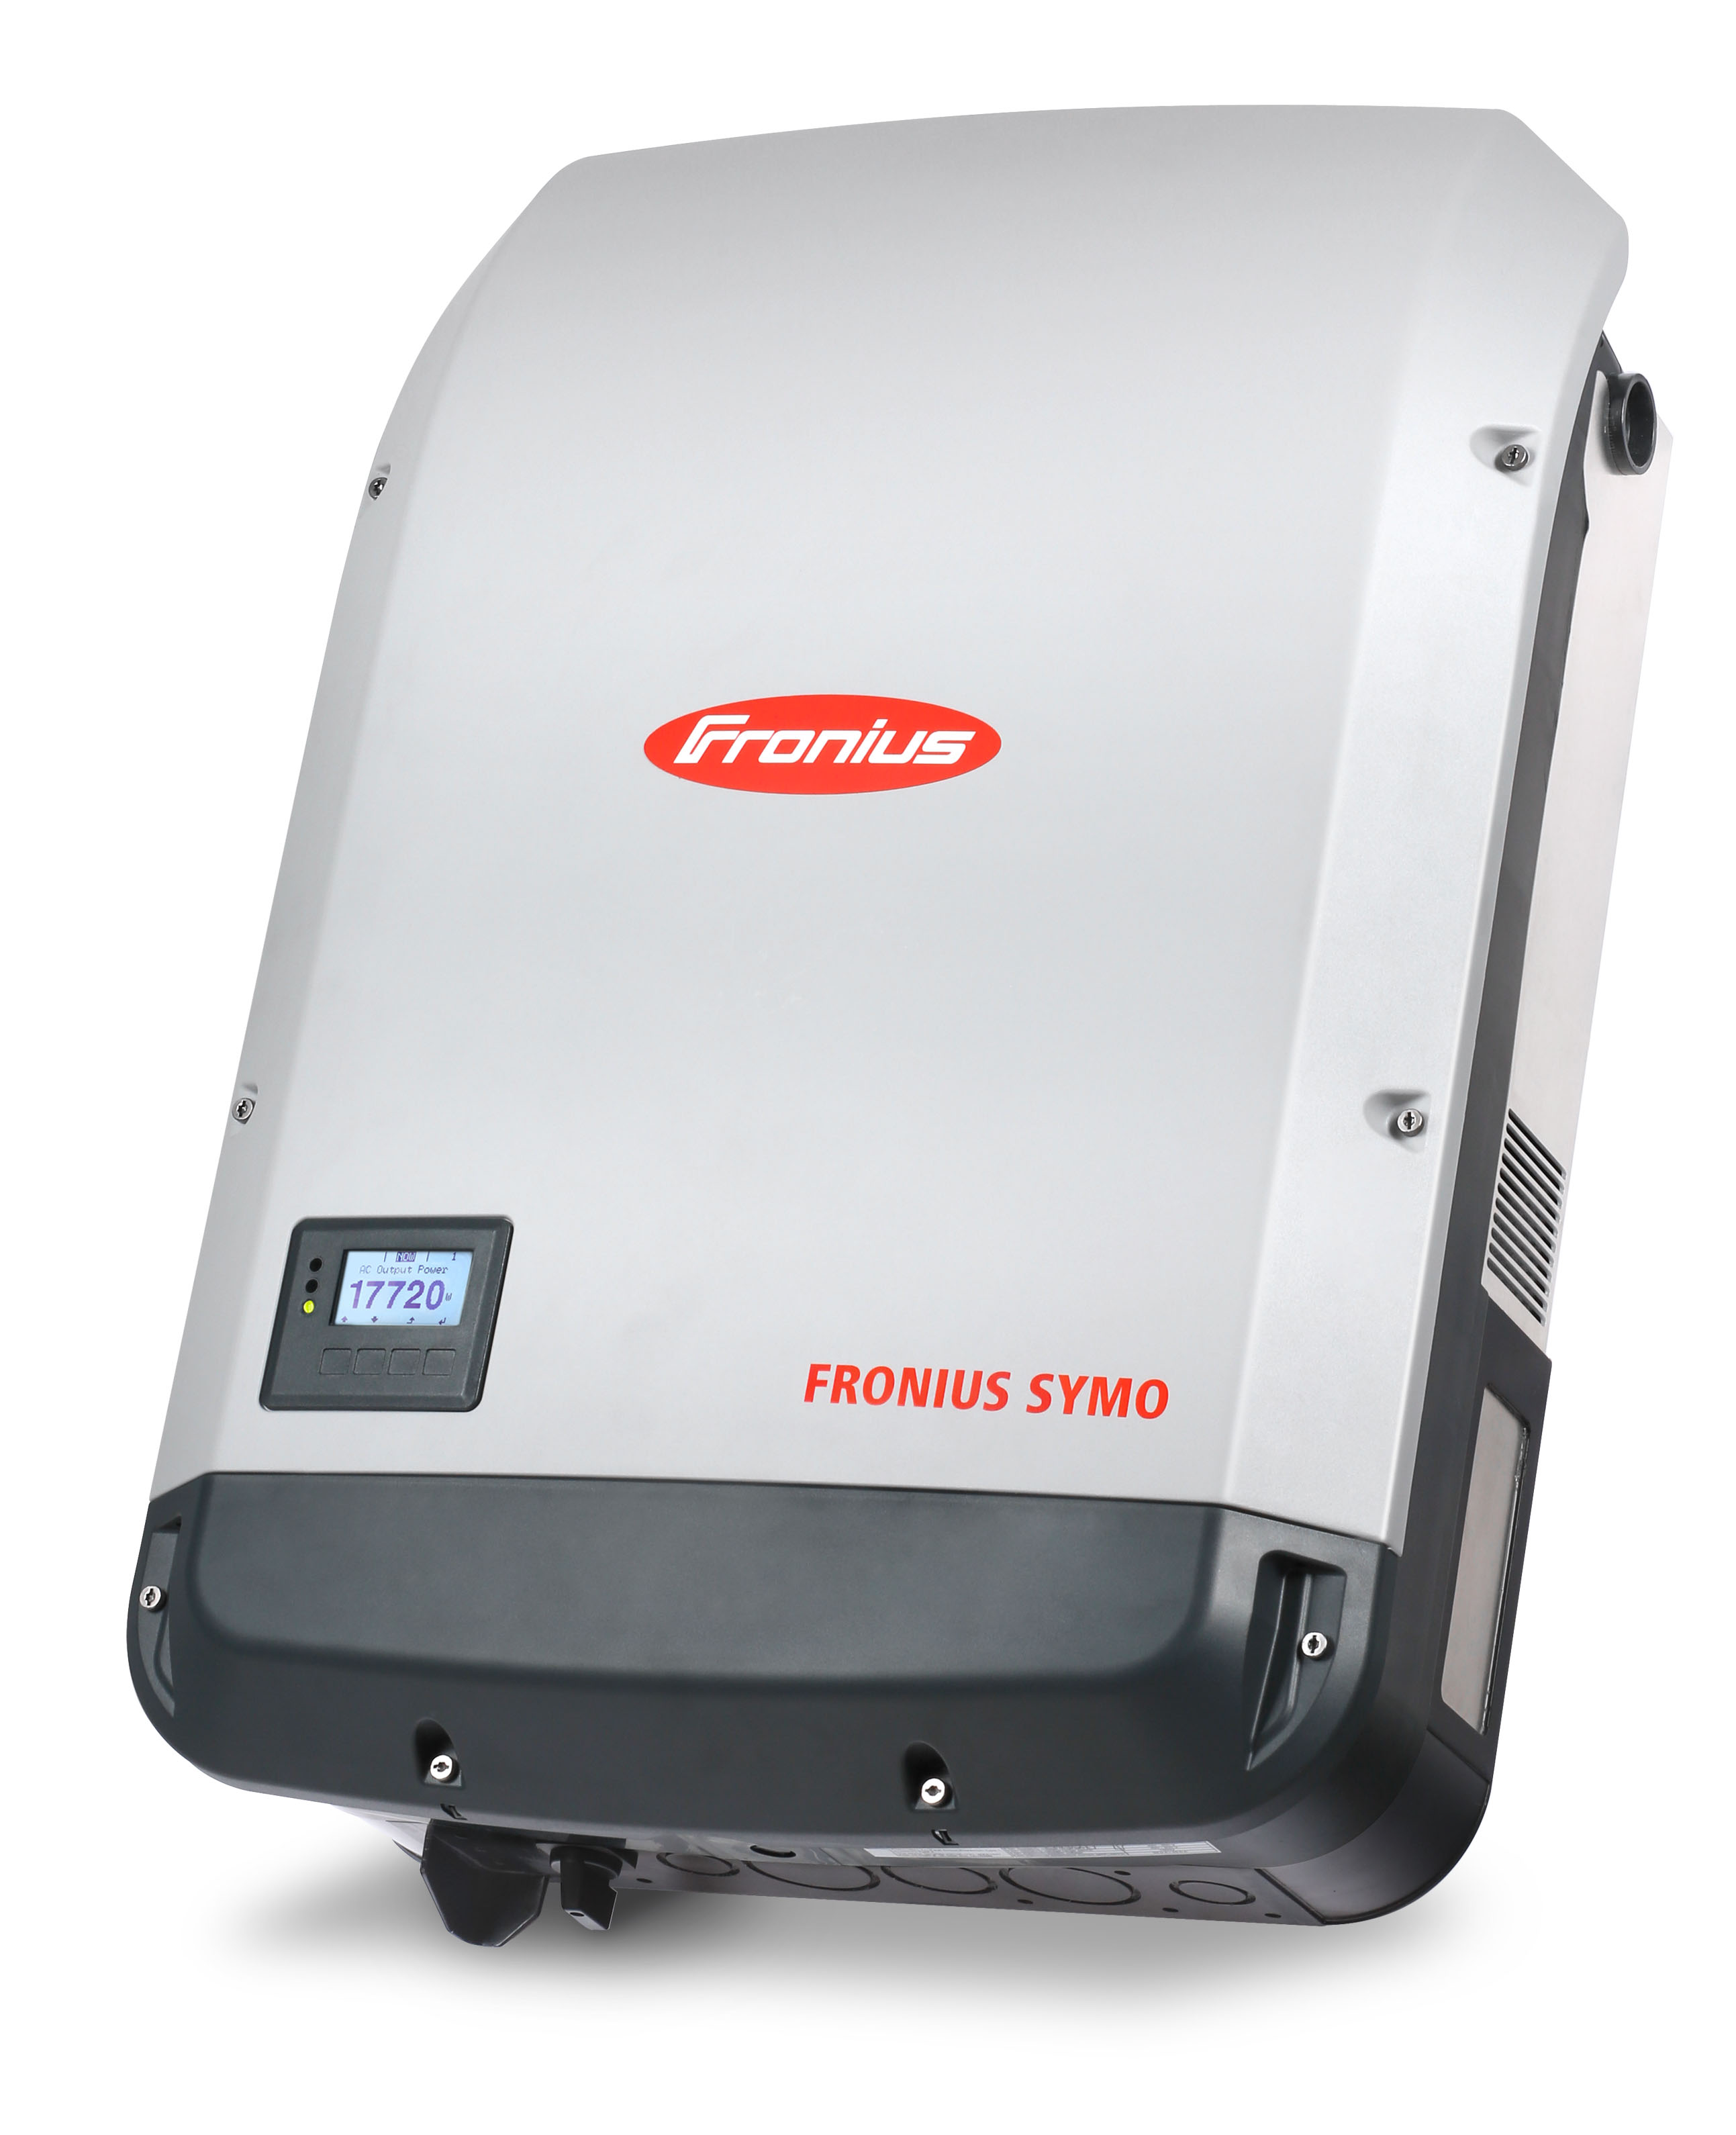 FRONIUS, SYMO 20.0-3 480, NON-ISOLATED STRING INVERTER, 20.0 KW, 480 VAC, LITE - NO DATAMANAGER 2.0 CARD